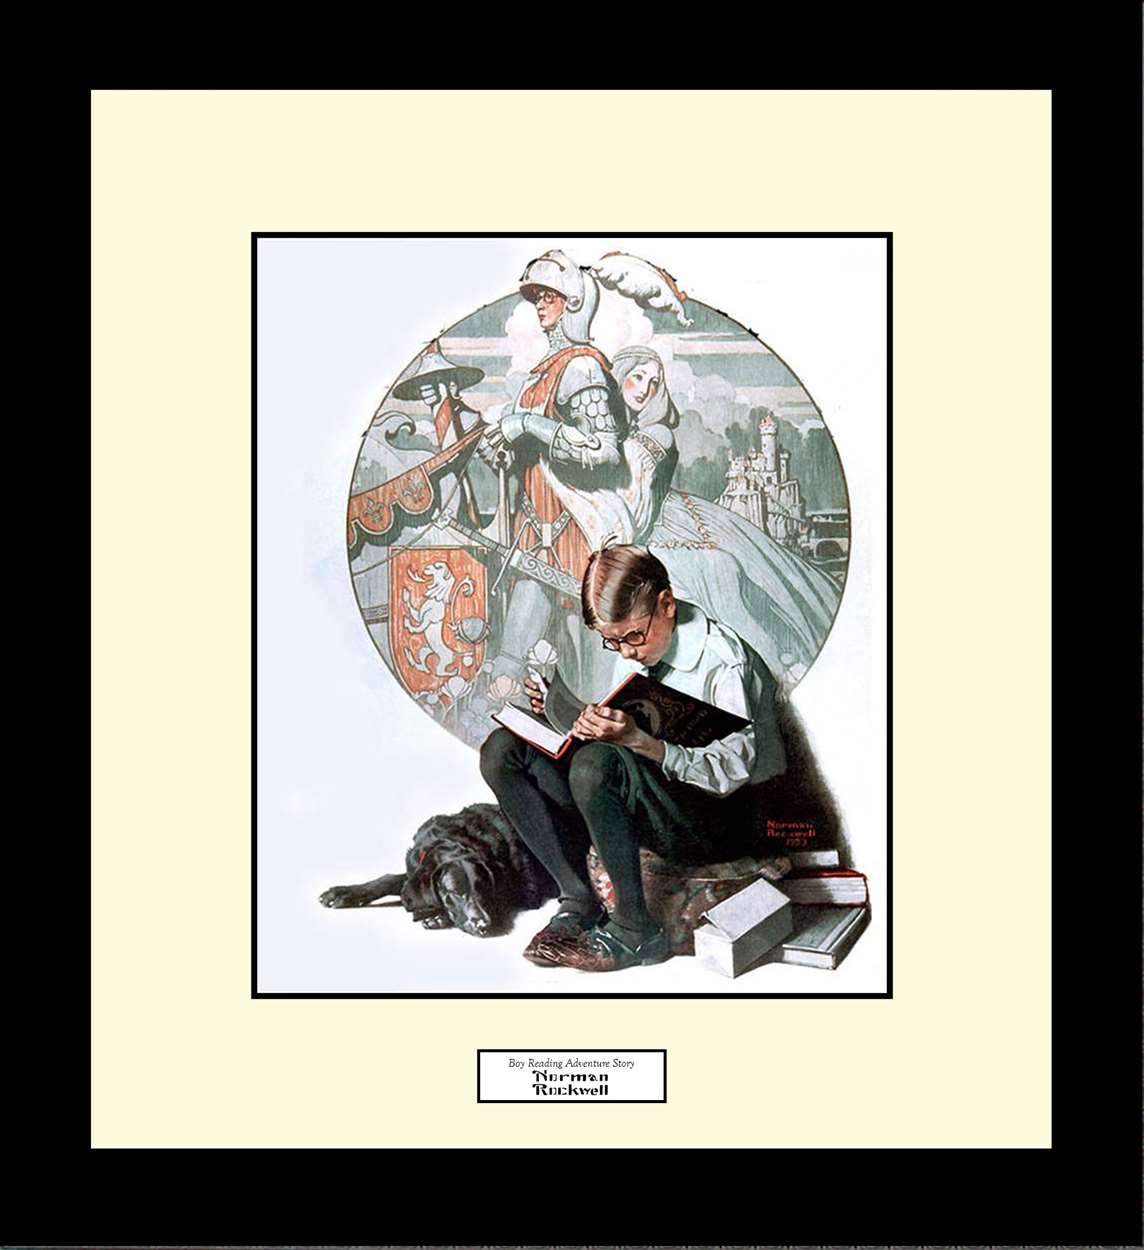 Boy Reading Adventure Story, Norman Rockwell, 16x18